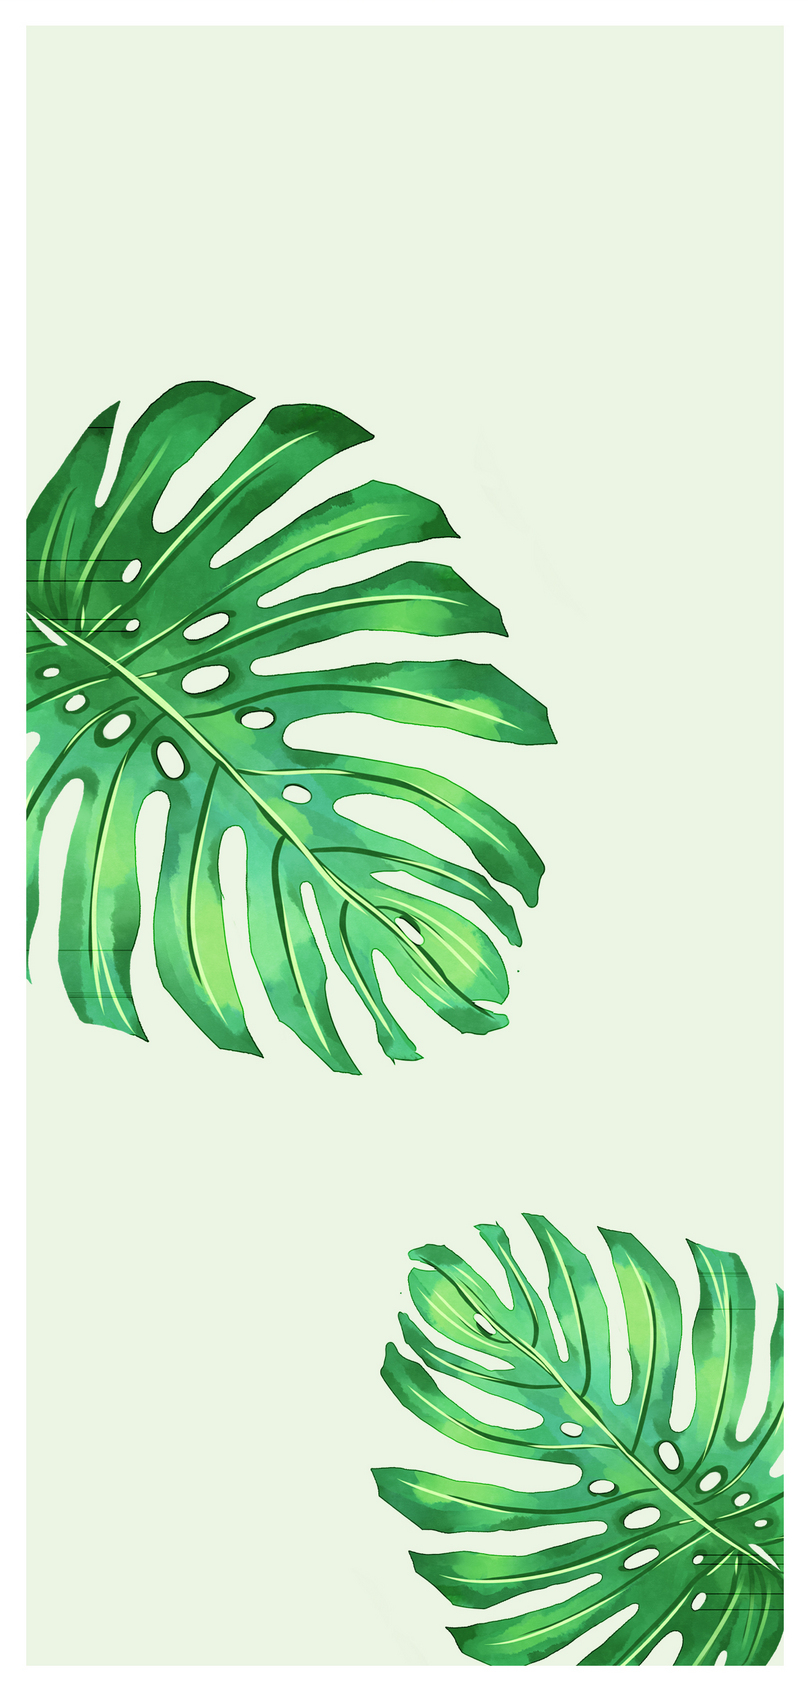 Green Leaf Mobile Phone Wallpaper Backgrounds Images Free